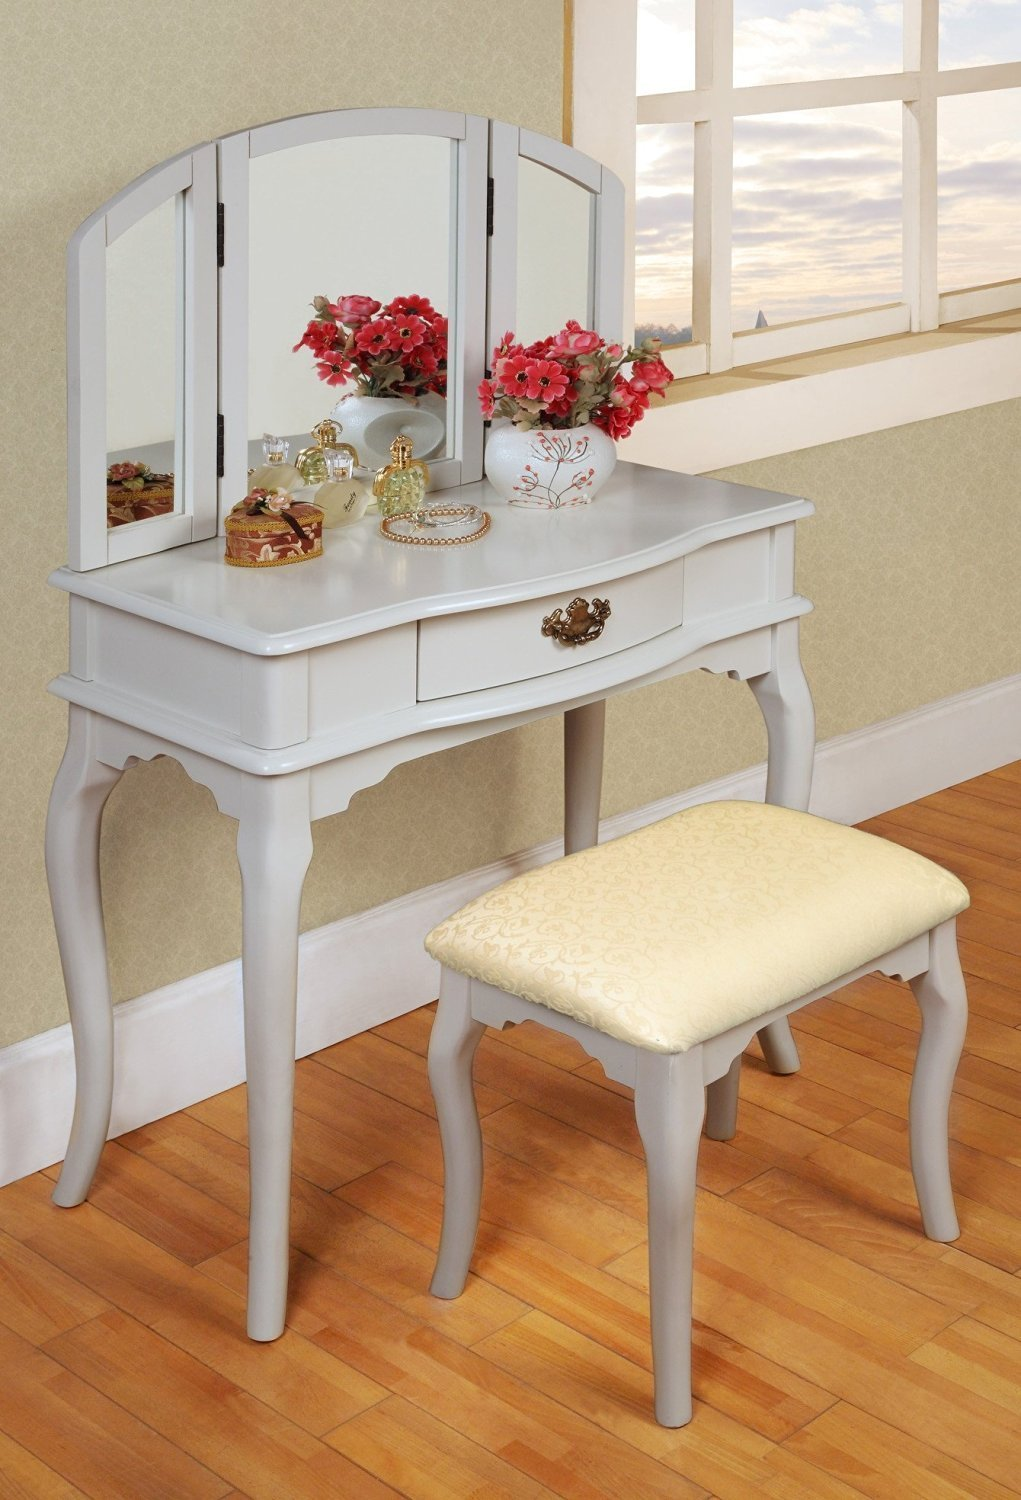 White Finished Wood Bedroom Makeup Vanity Set with Vanity Table - Center Drawer - Tri-fold Vanity Mirror and Upholstered Cushion Wood Bench in French Country Design Best in Vanity Tables